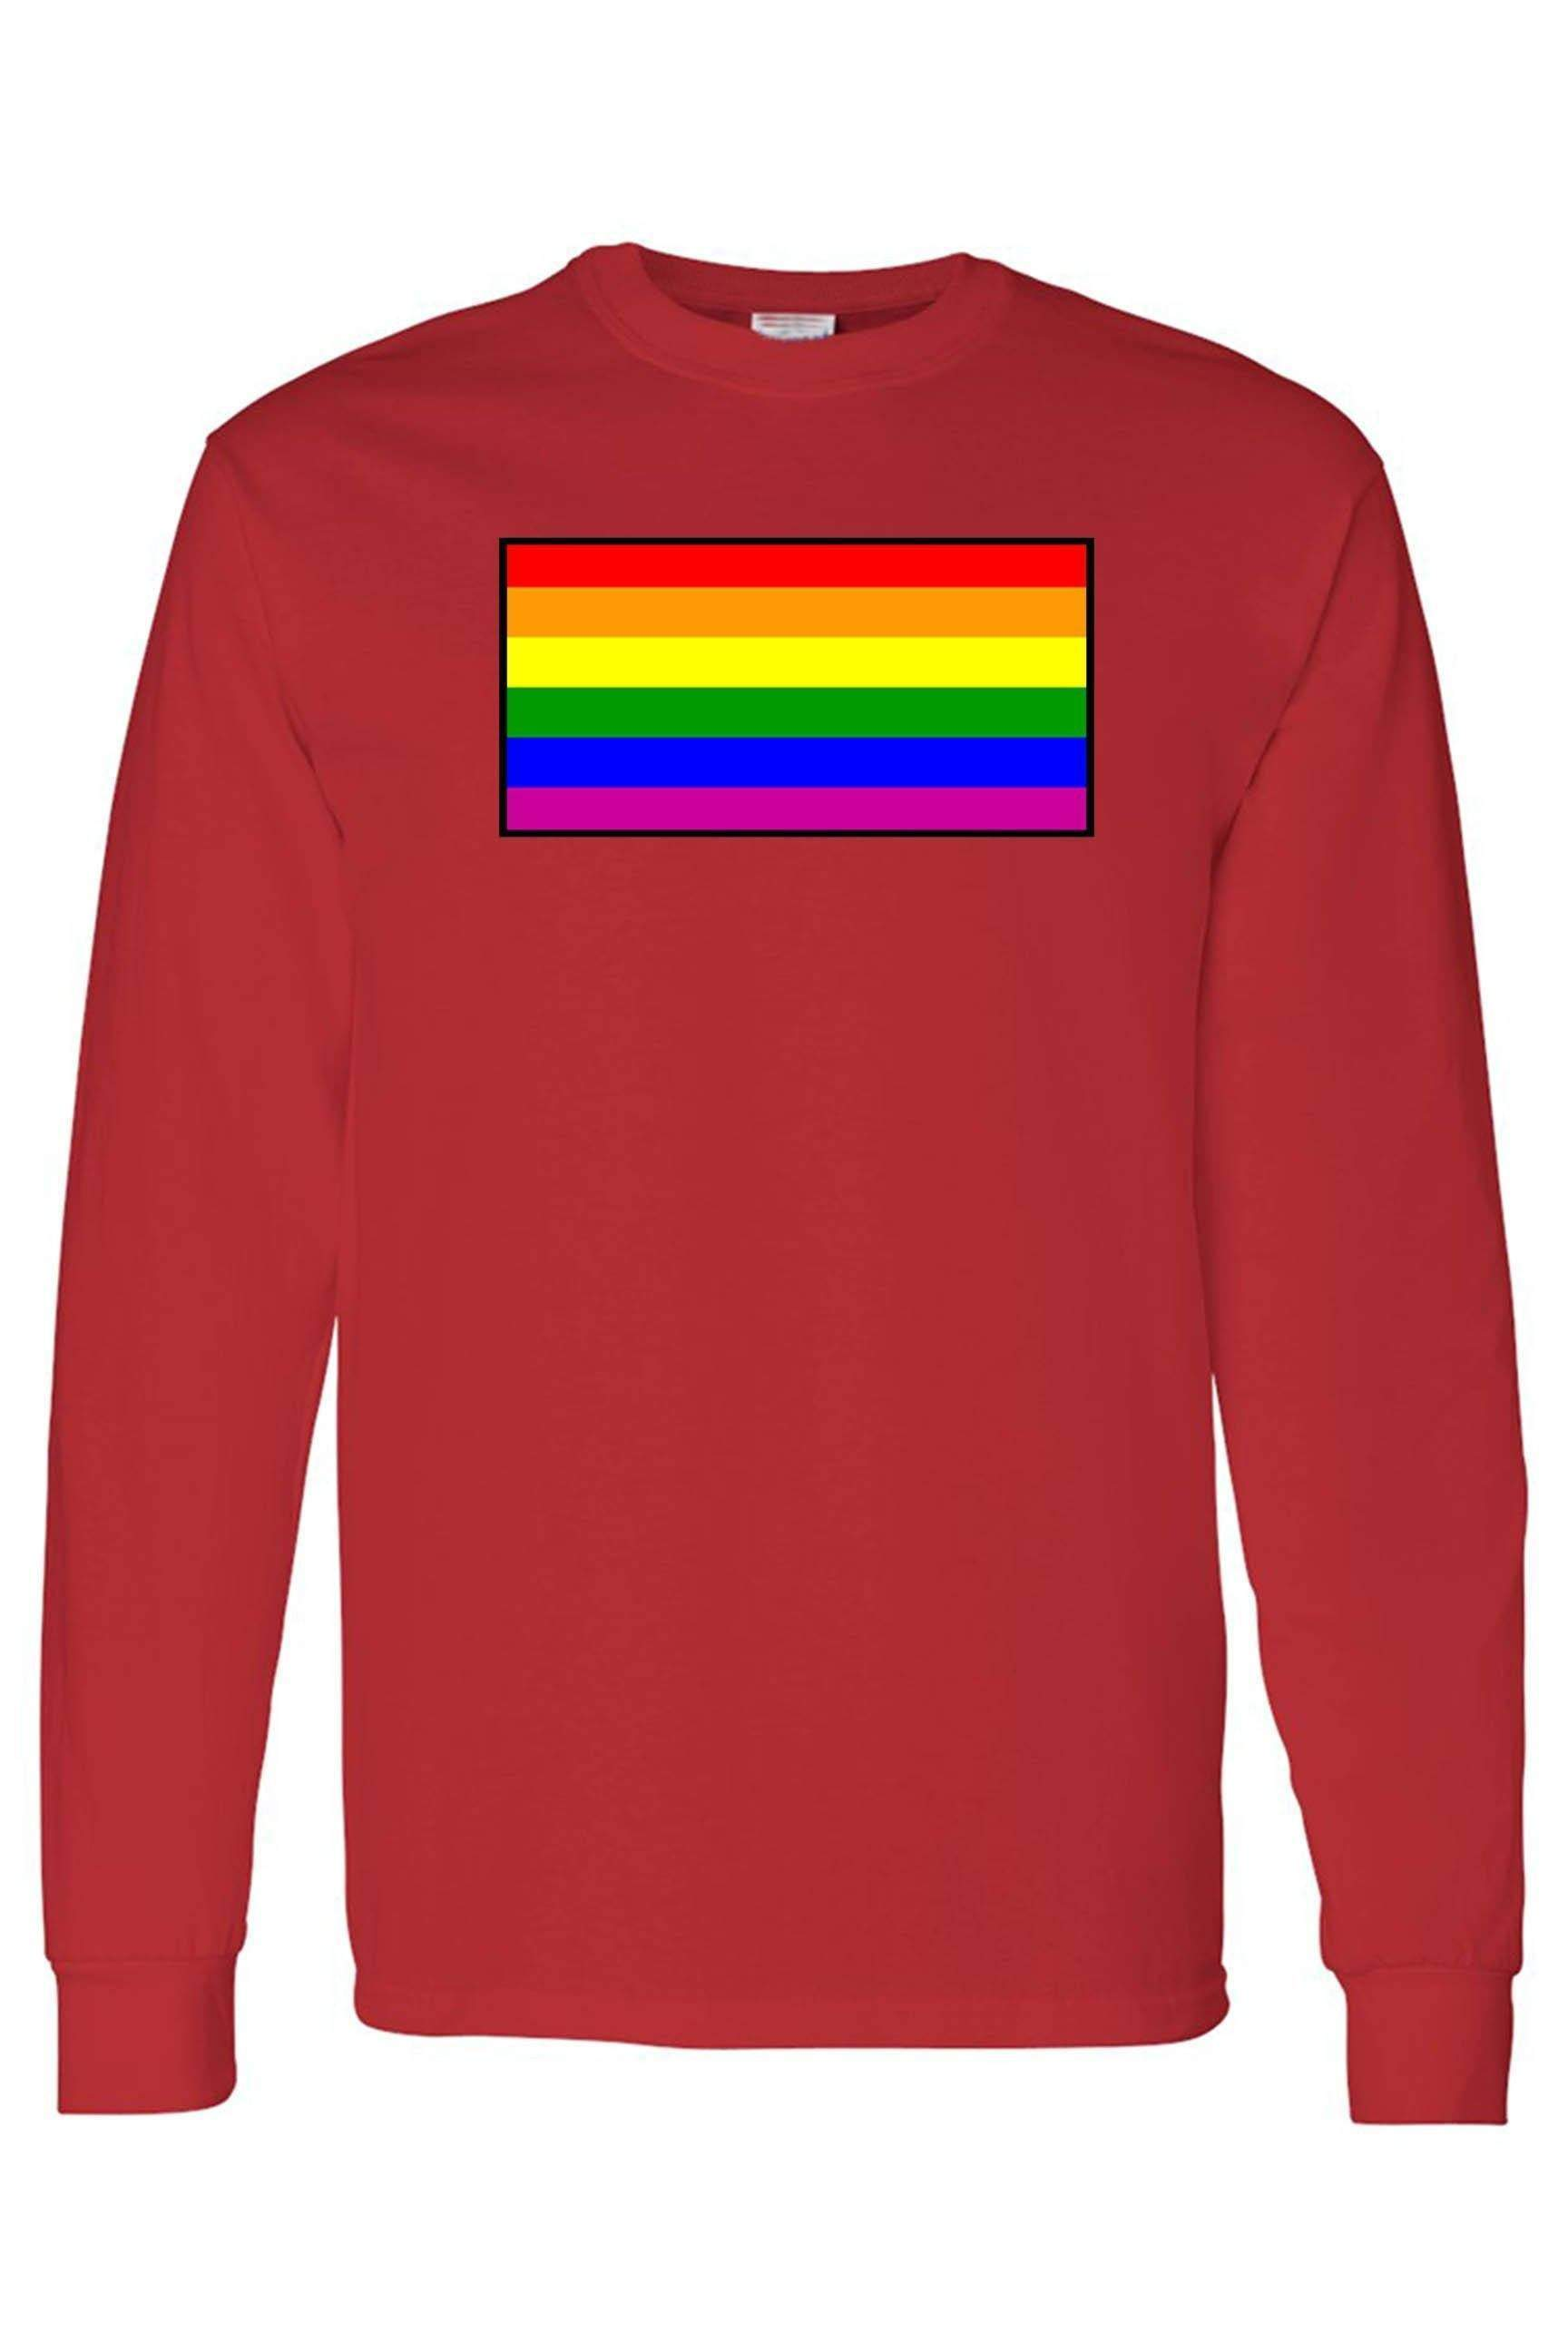 Unisex Long Sleeve Shirt Gay Pride Rainbow Flag